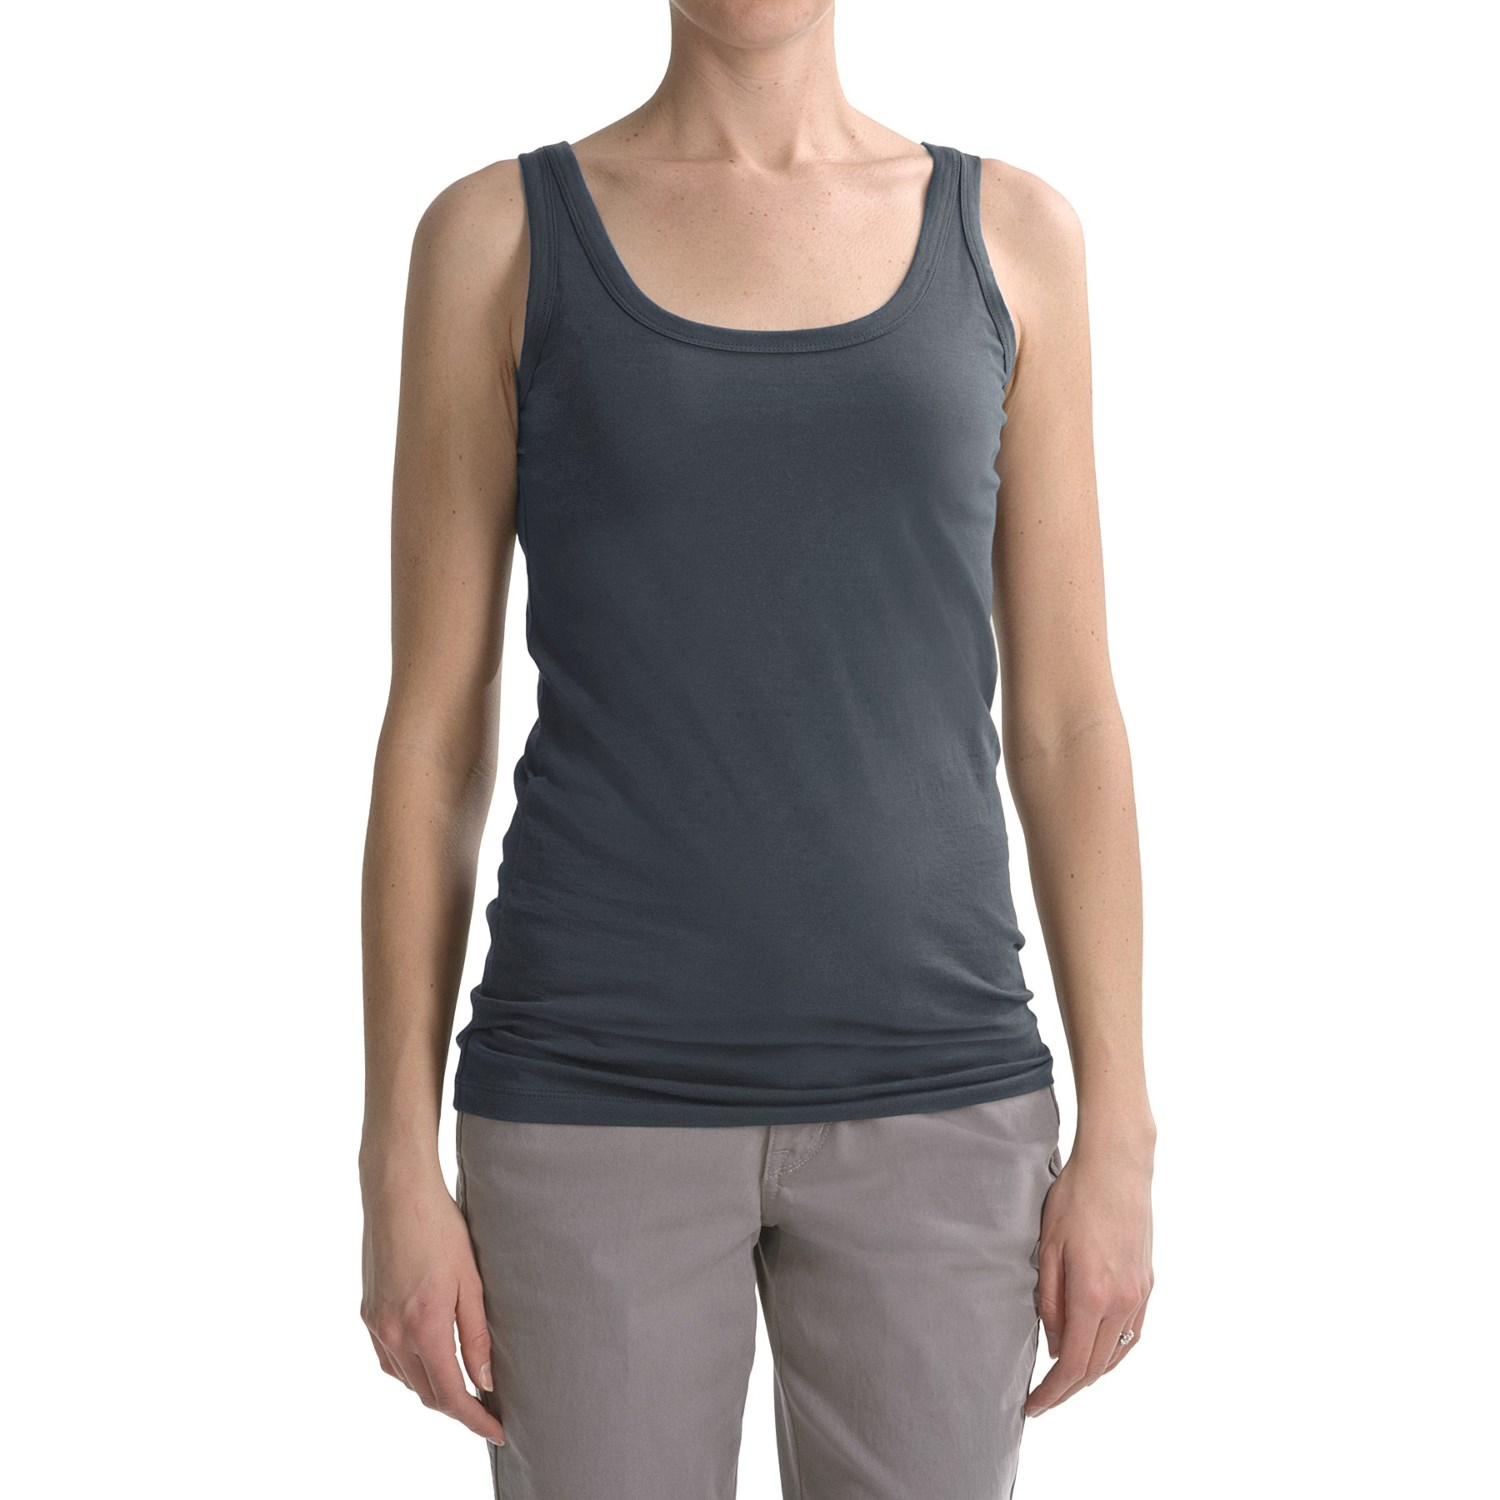 Apr 30,  · James Perse Long Jersey Tank, Racerback Best Loved Bra Cami, and Eileen Fisher Organic Cotton Long Ribbed Tank are probably your best bets out of the 4 options considered.